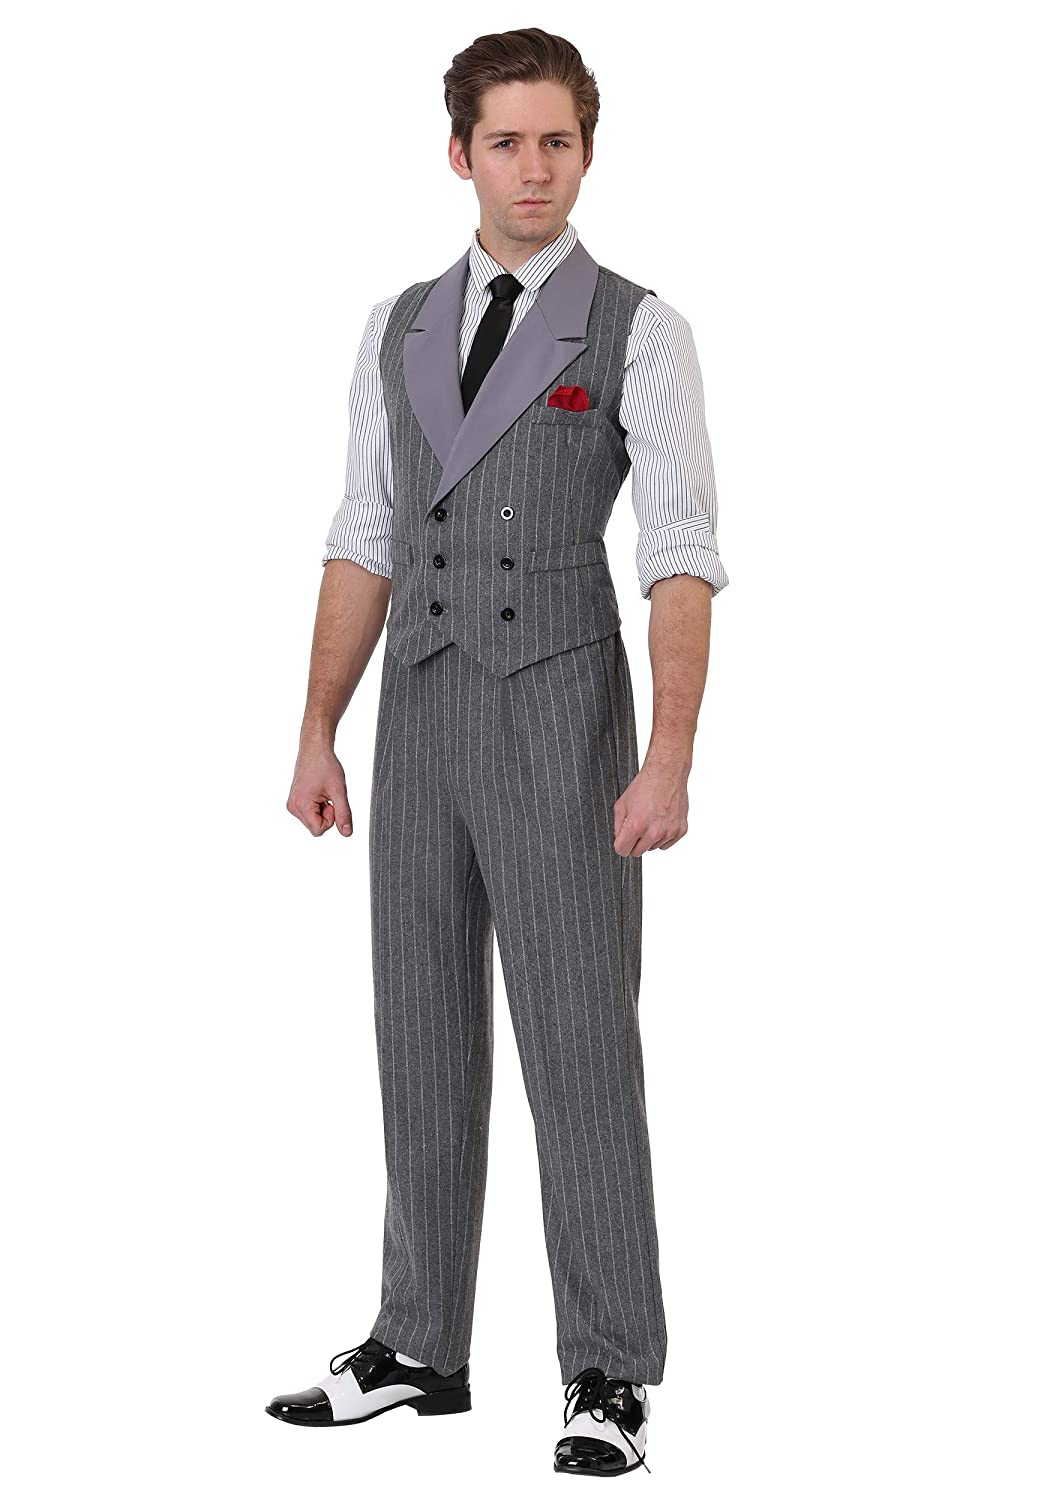 Retro Clothing for Men | Vintage Men's Fashion 1920 Mafia Don Costume Mens Ruthless Gangster Costume $79.99 AT vintagedancer.com